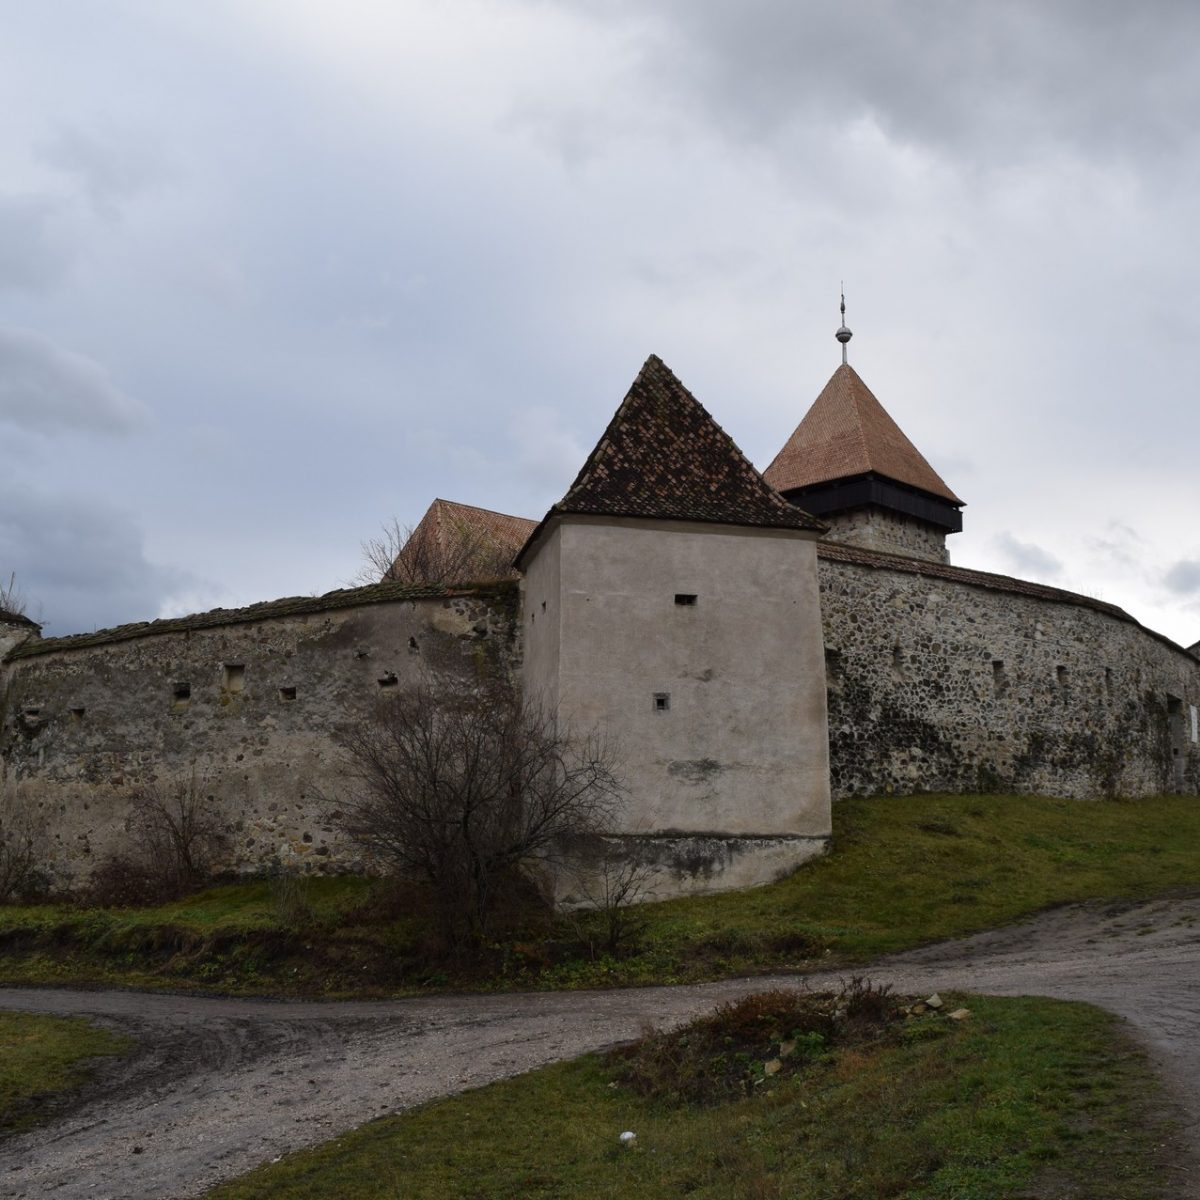 Fortified church of Drauseni, Harghita county.